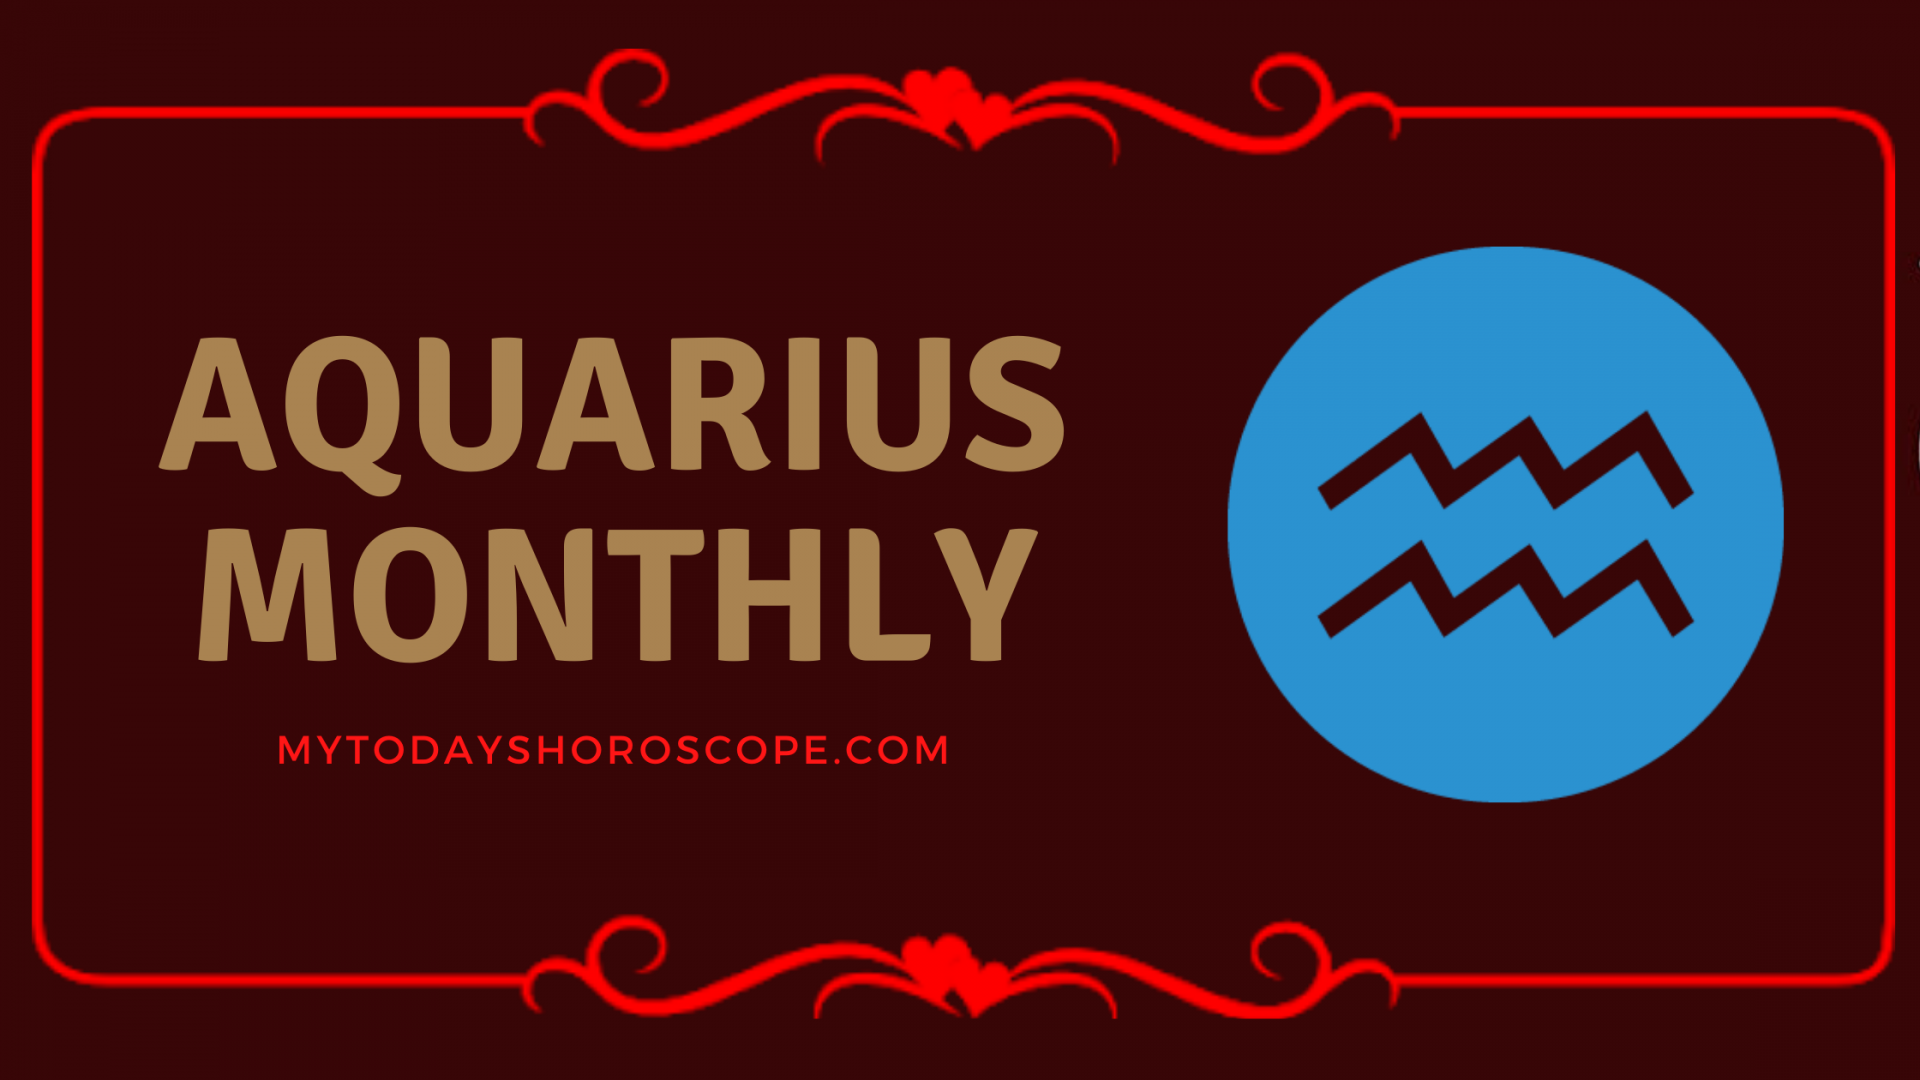 AQUARIUS Horoscope April 2021 - Monthly Predictions for Love, Health, Career and Money